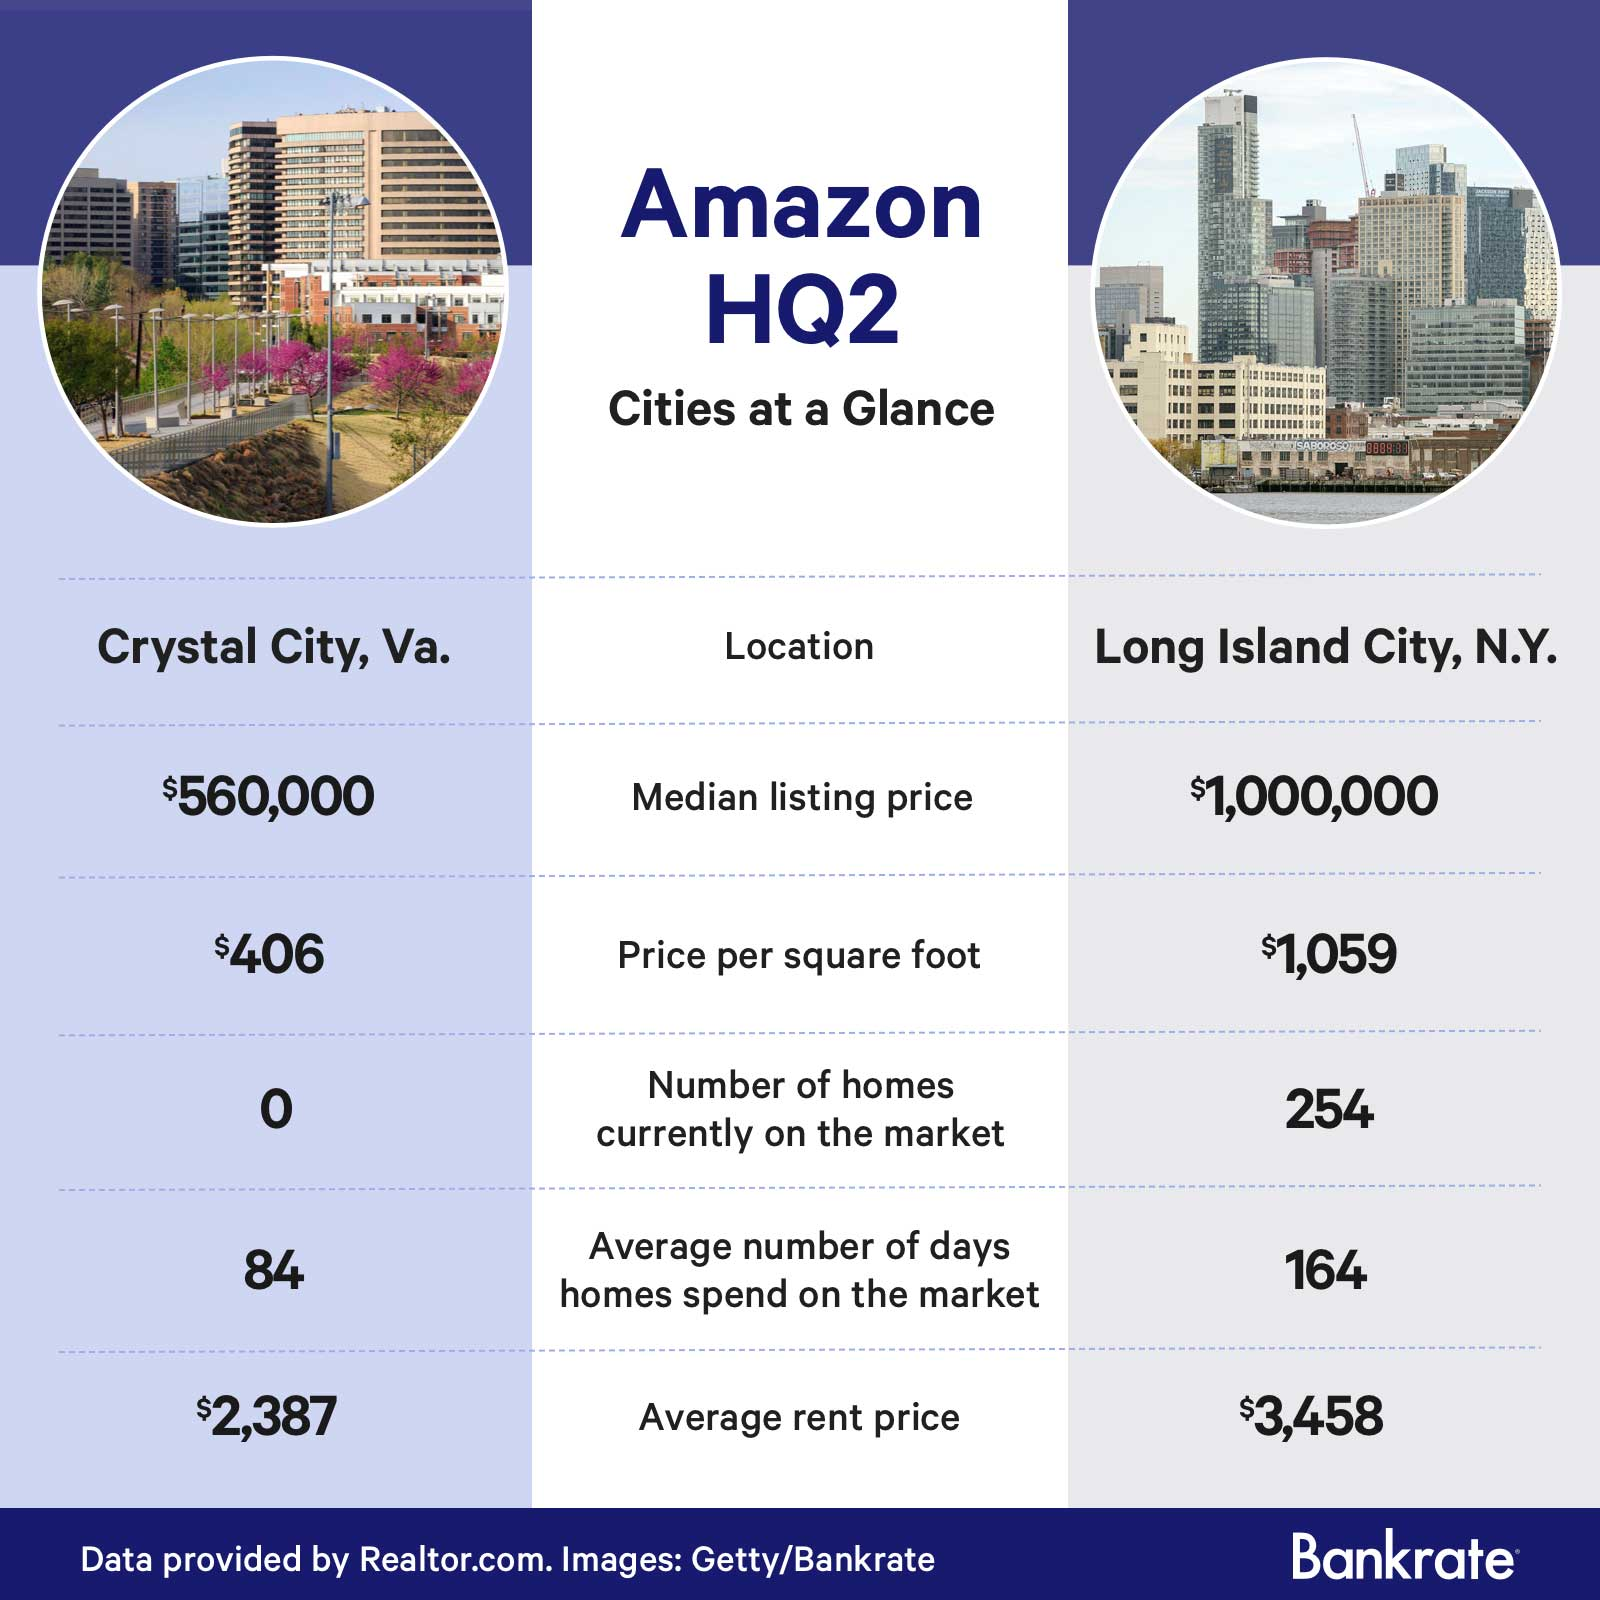 A comparison of Amazon's newest headquarters location: Crystal City, Va. and Long Island City, N.Y.